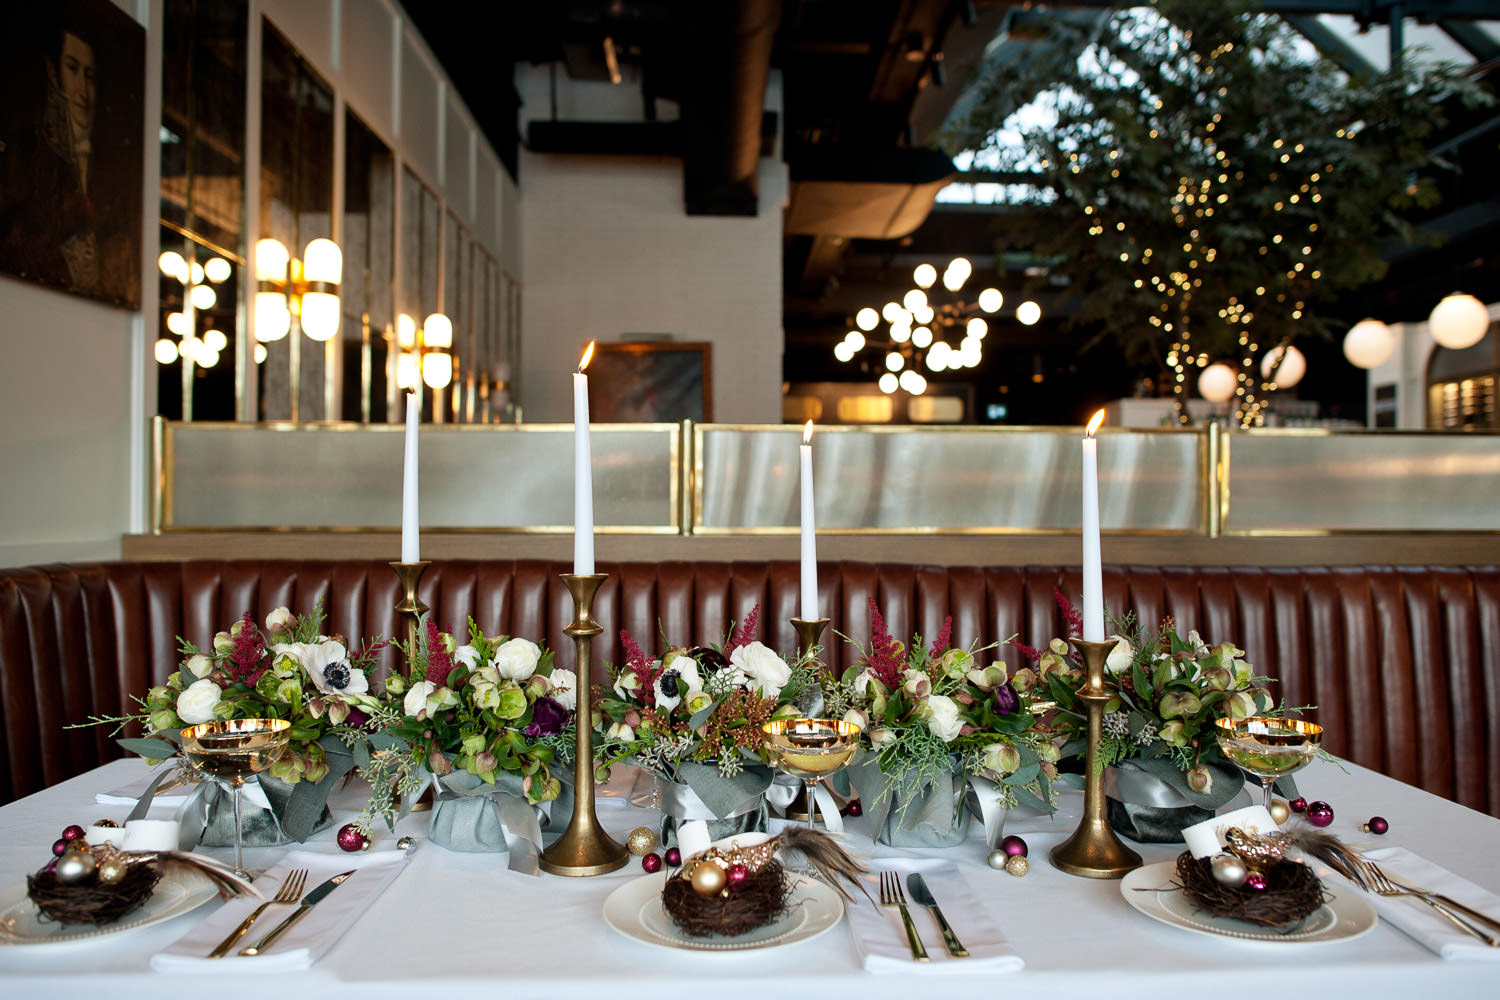 Holiday tabletop captured by Tara Whittaker Photography